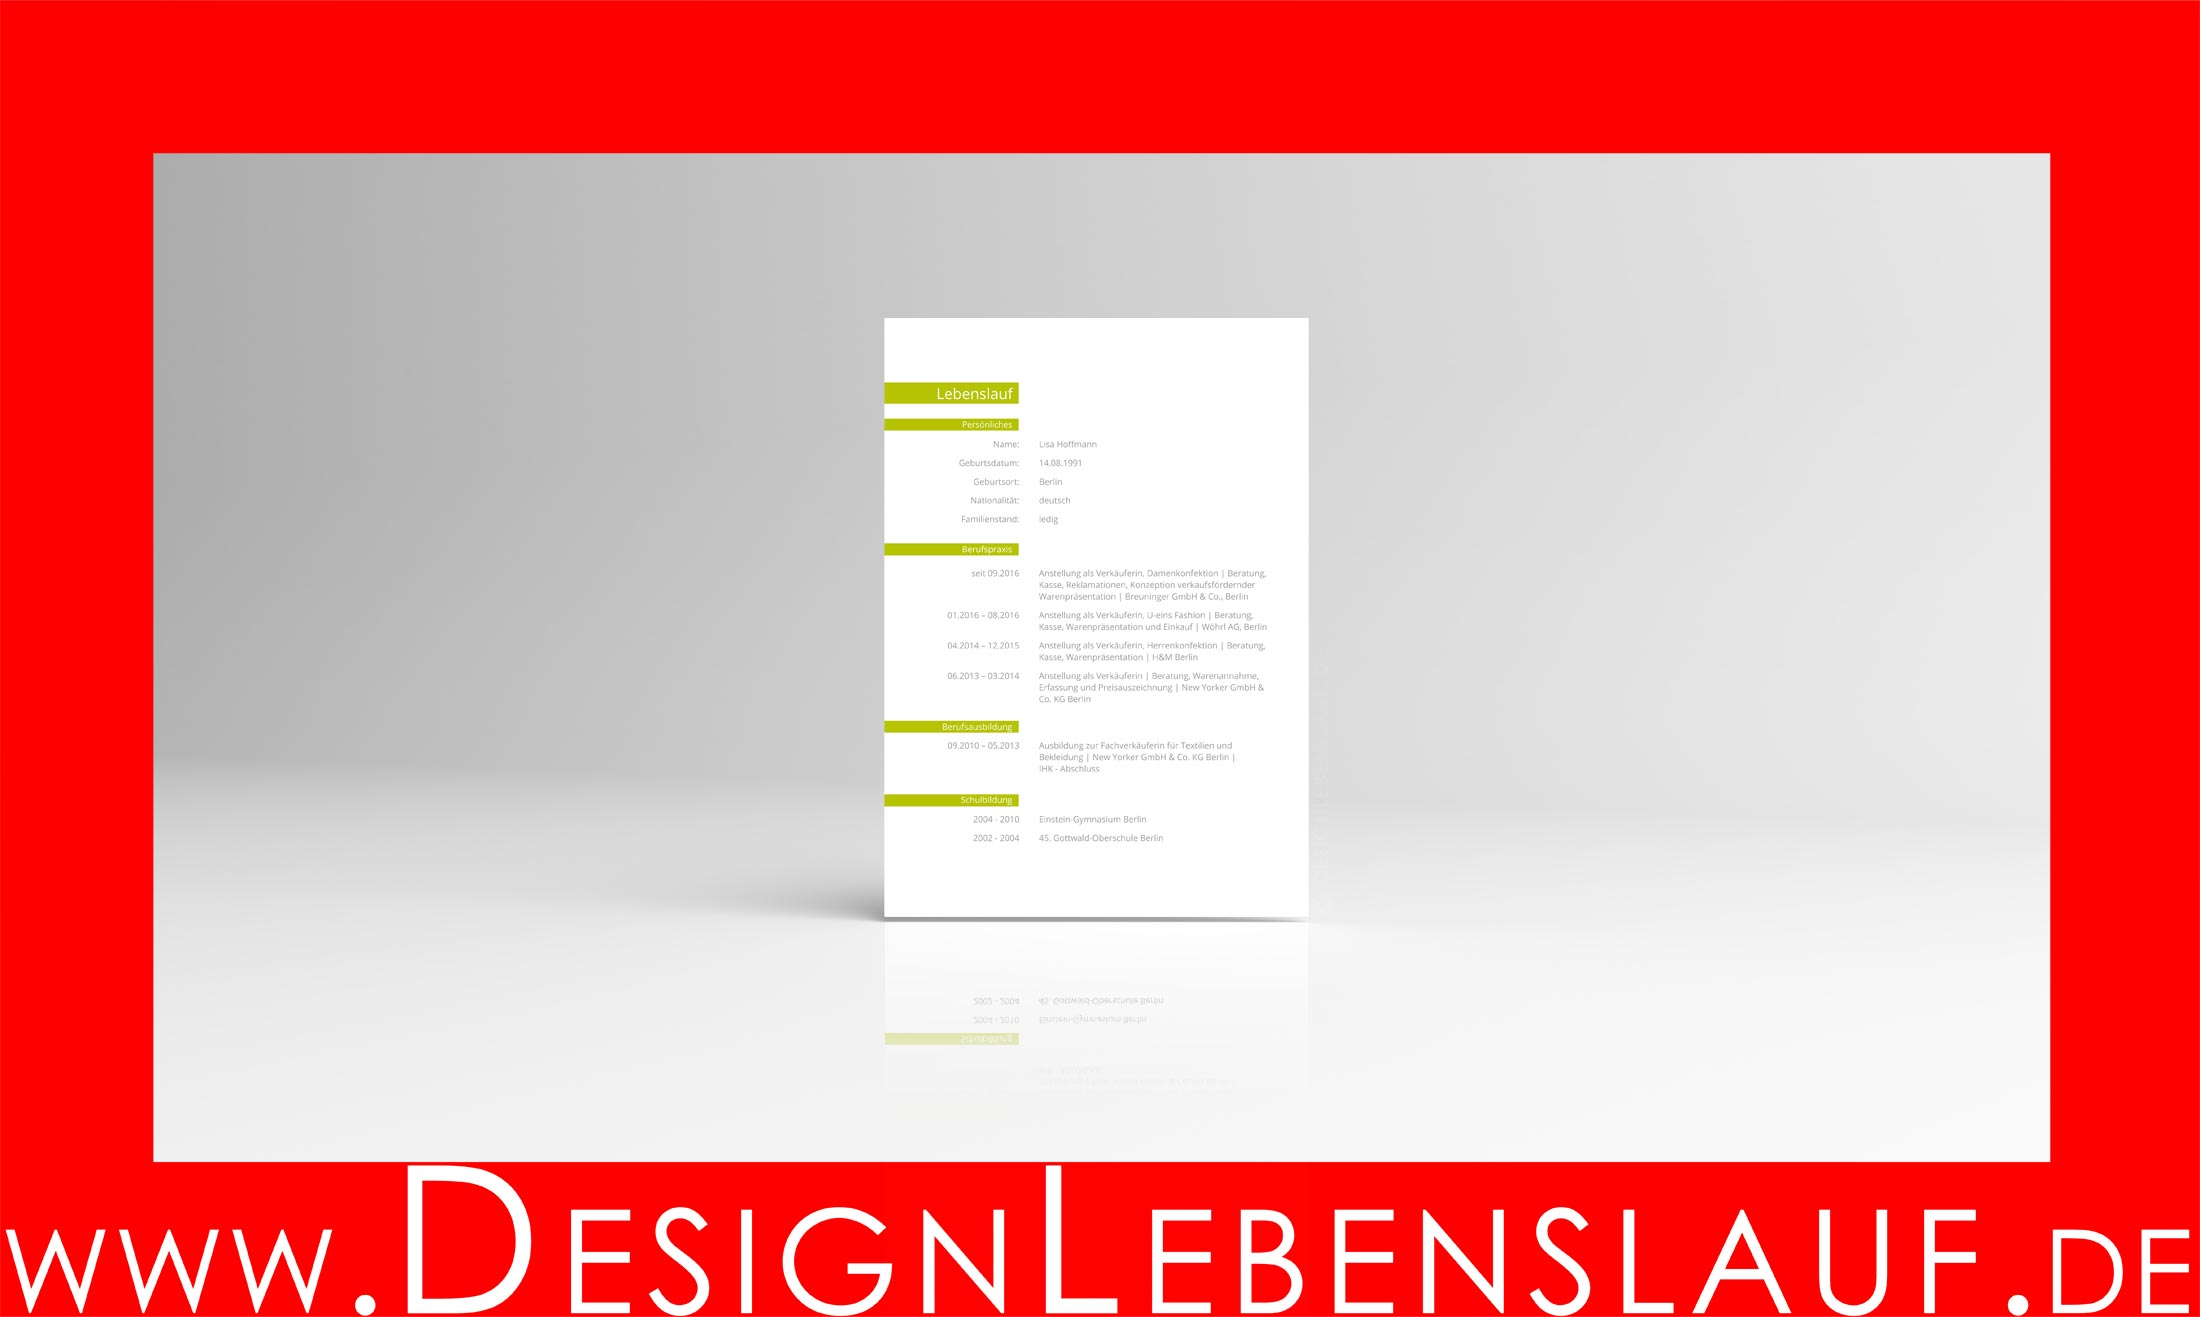 Fein Familienstand Format Fotos - Entry Level Resume Vorlagen ...